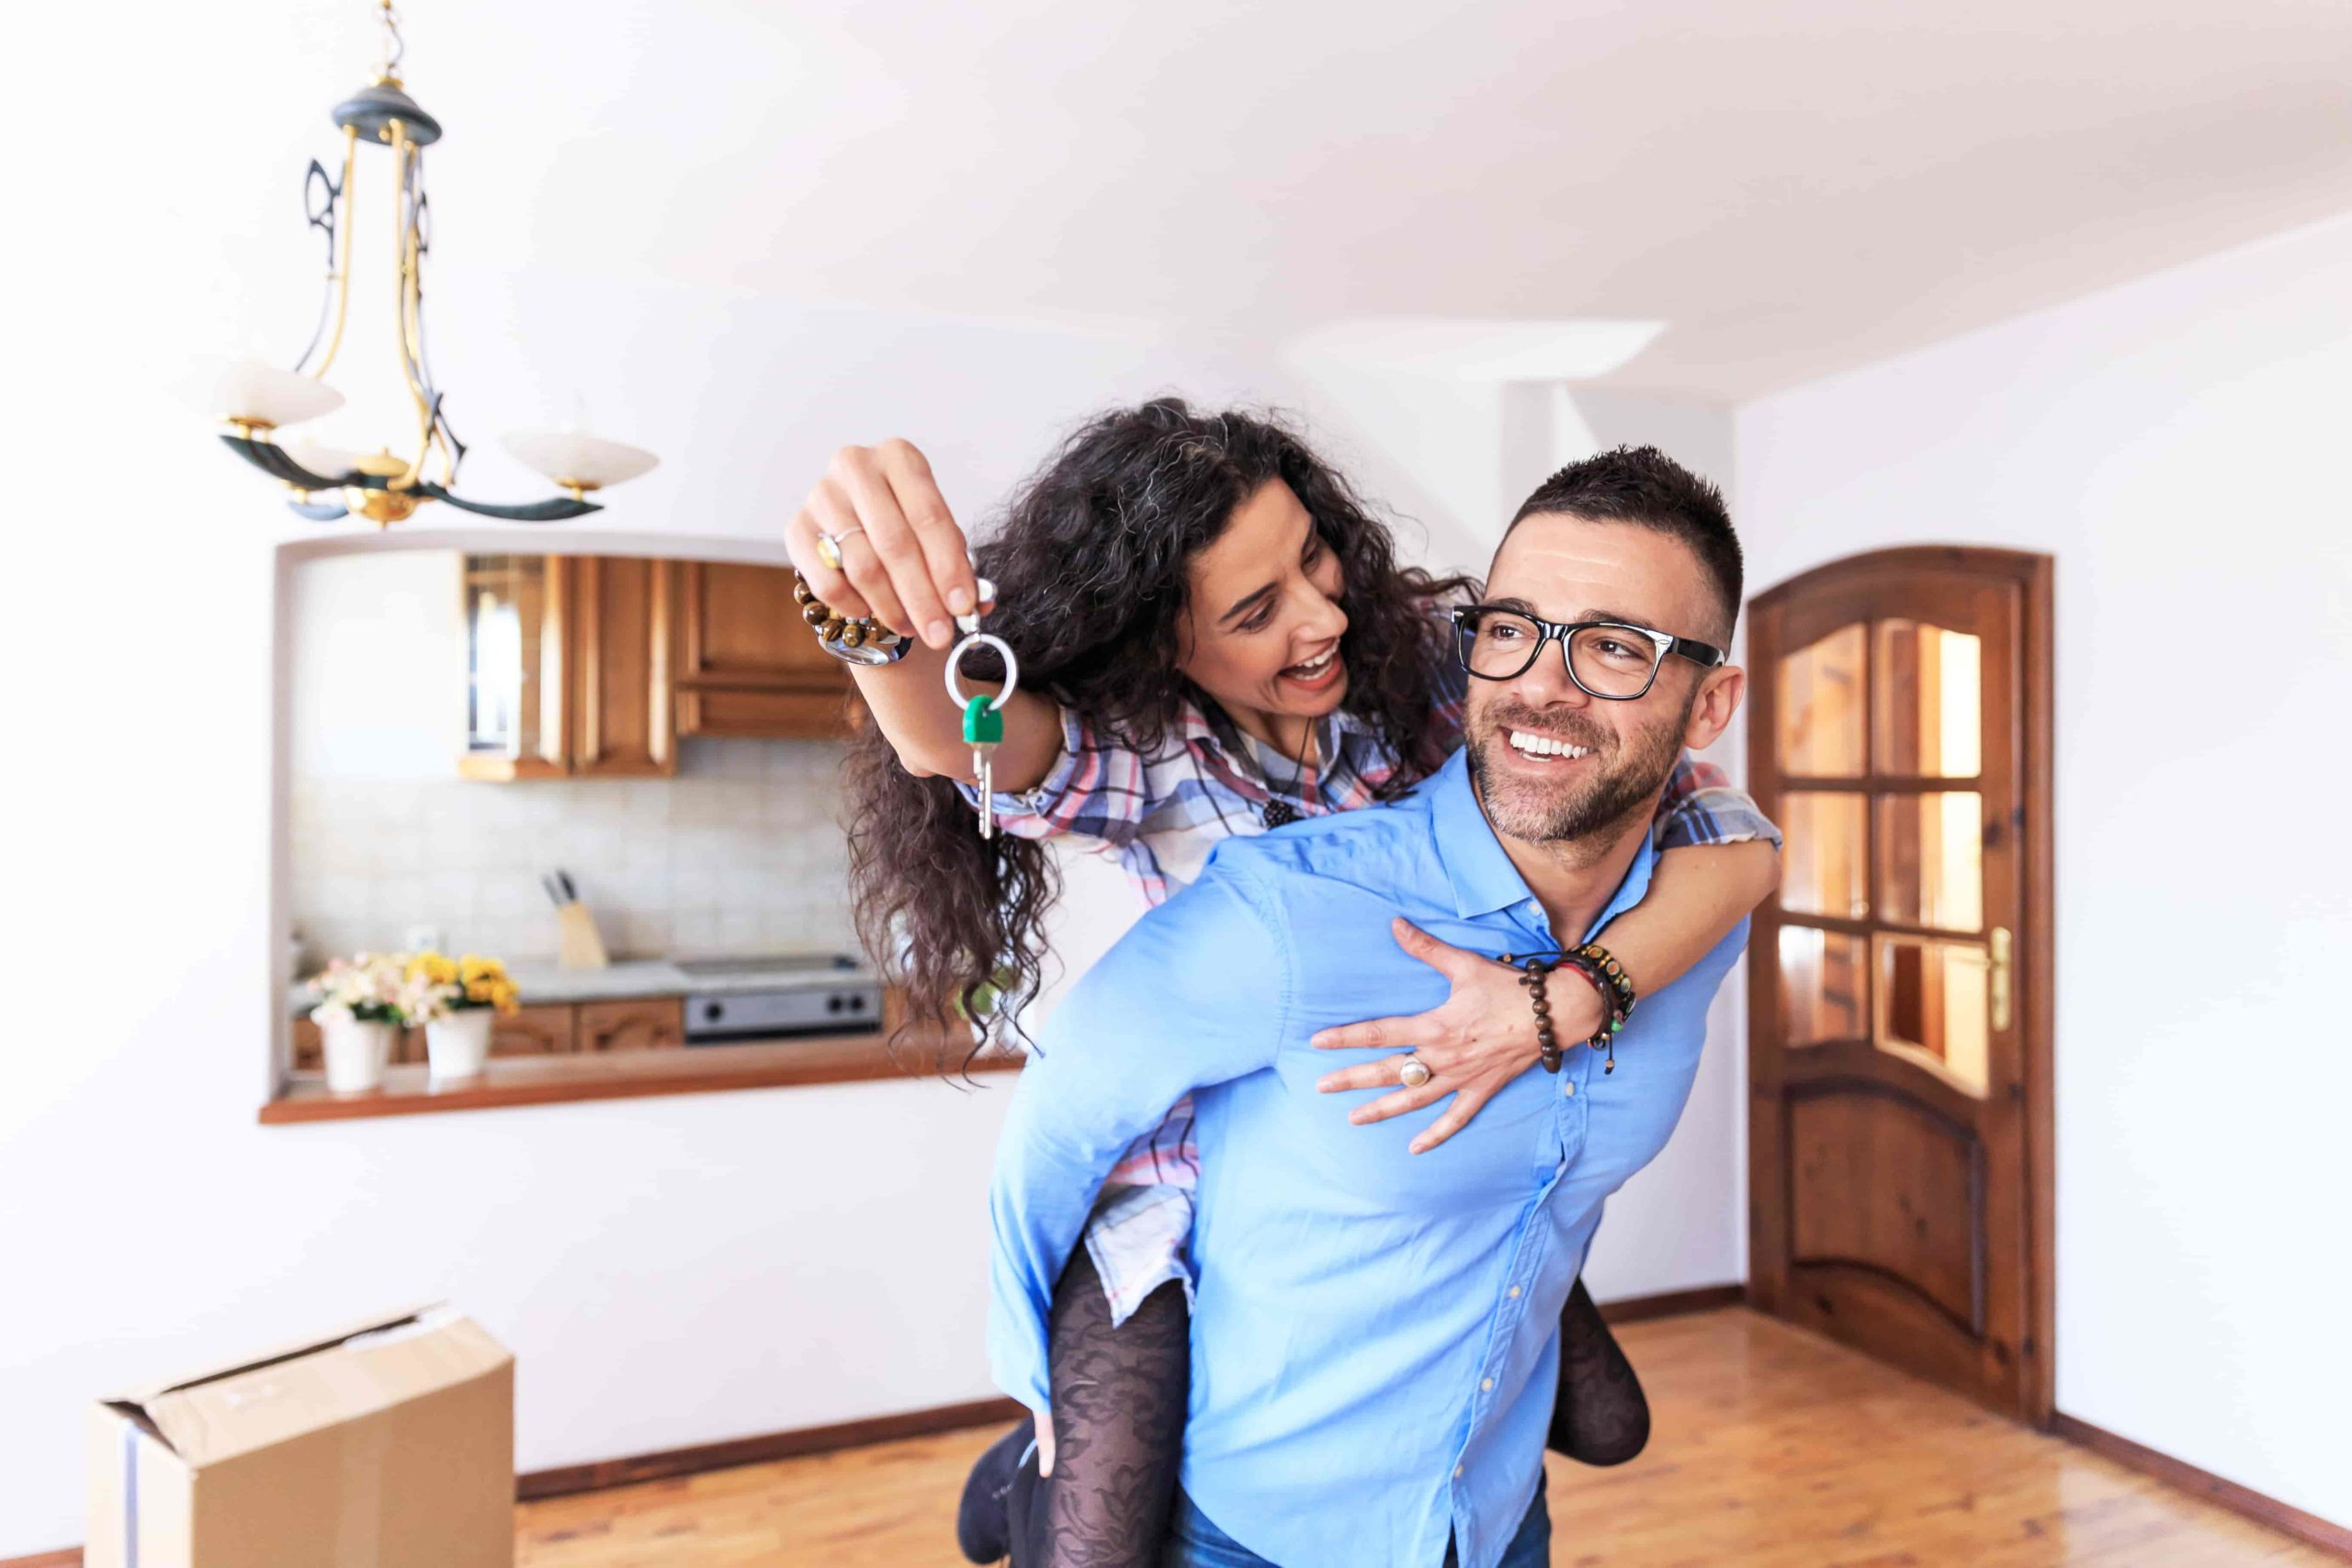 man gives his partner a piggyback ride in their new living room, showing off the keys to new house bought by house hacking